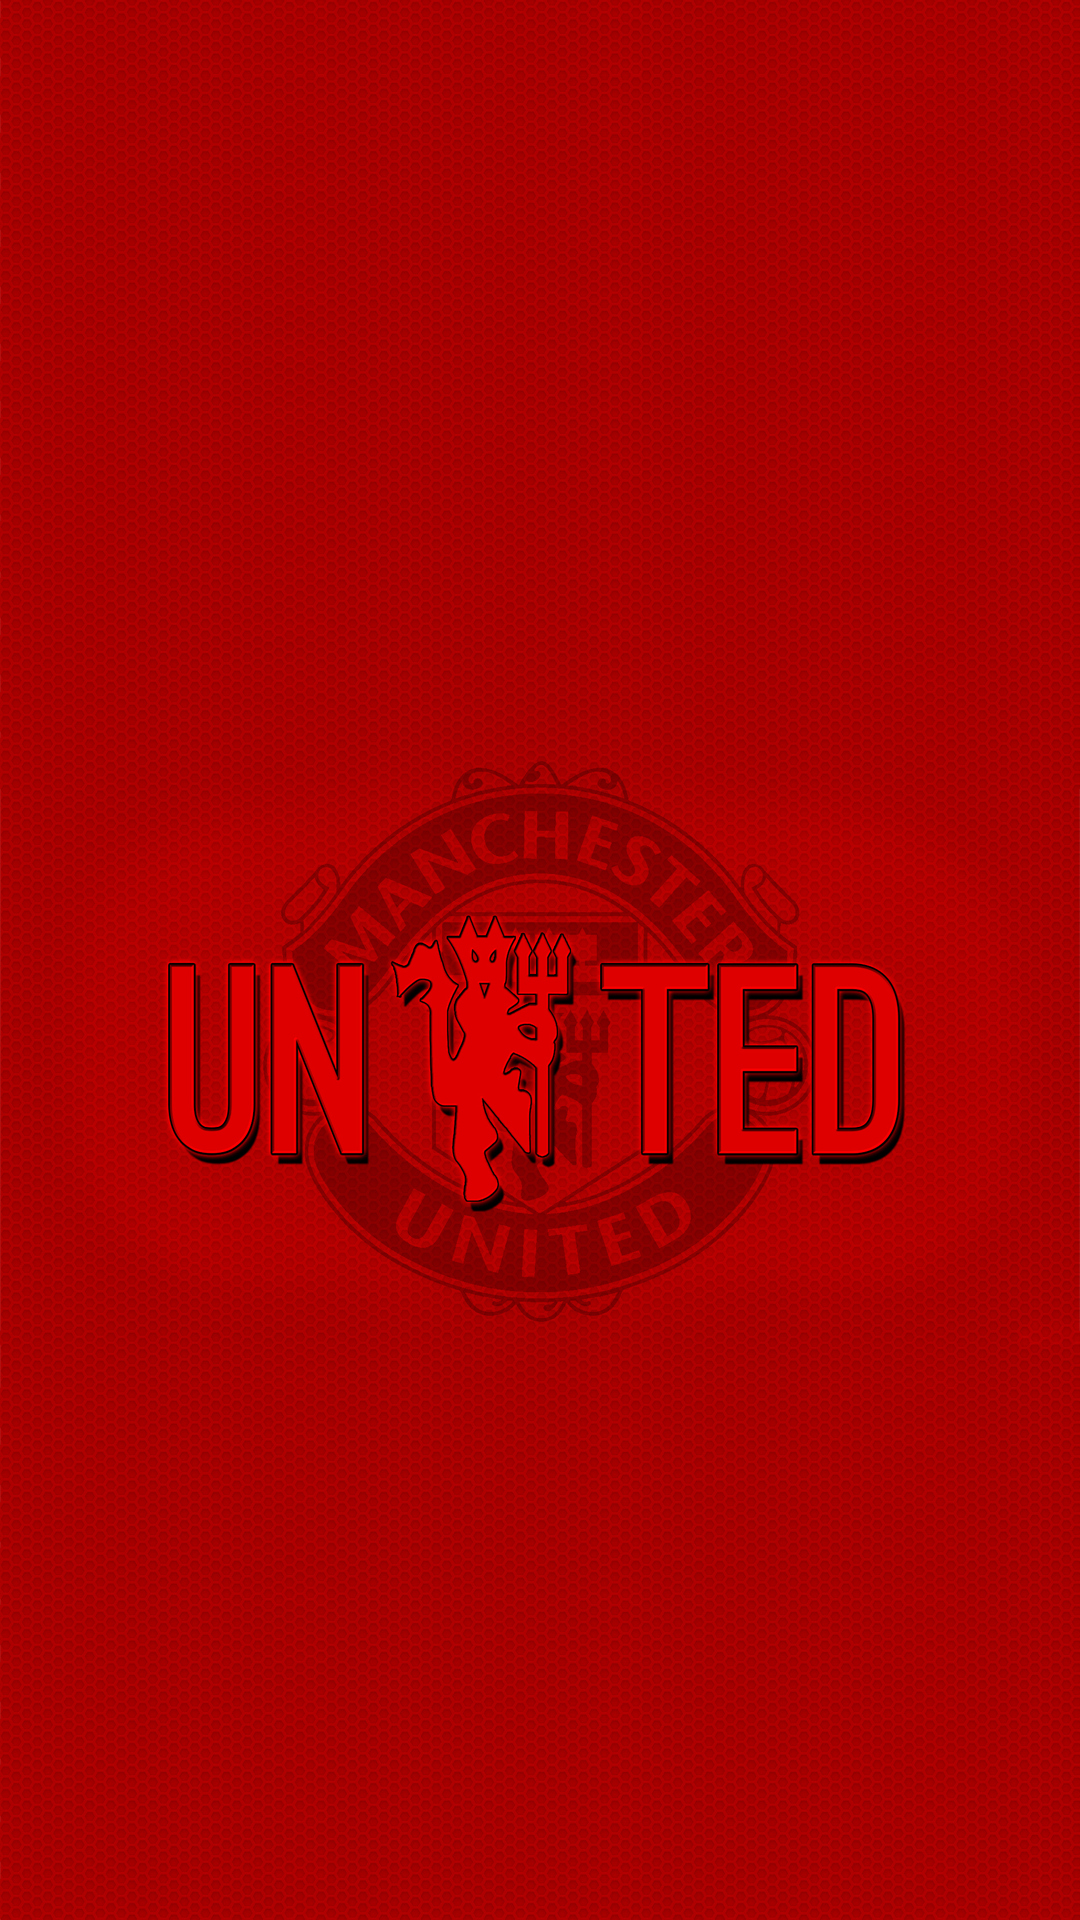 The Manchester United Iphone 7 Plus Wallpaper